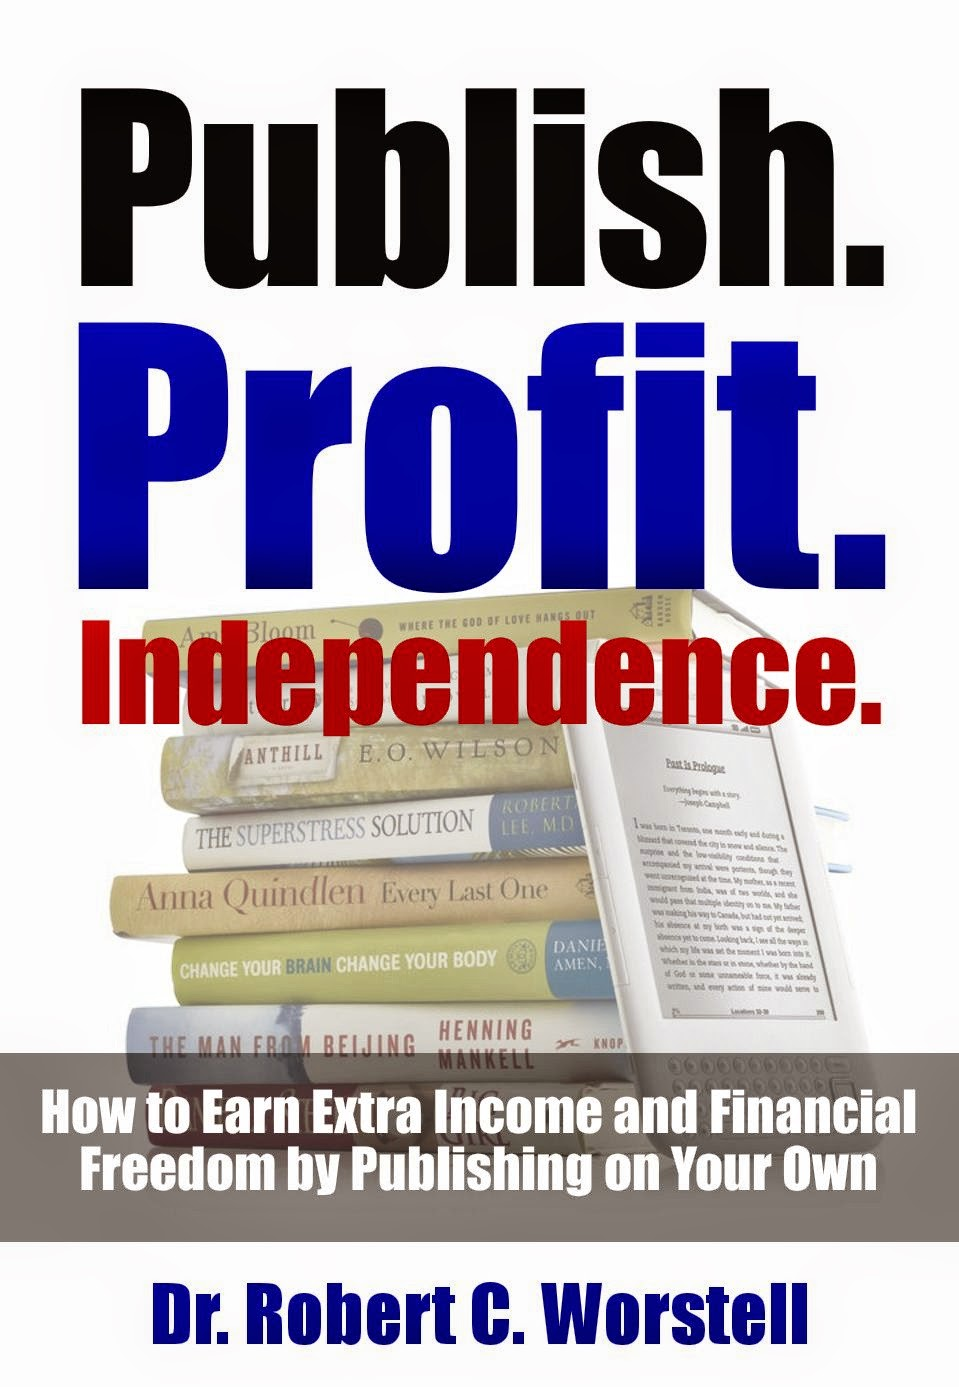 I Love Indie Publishing - Perpetual Passive Income Makes My Day.